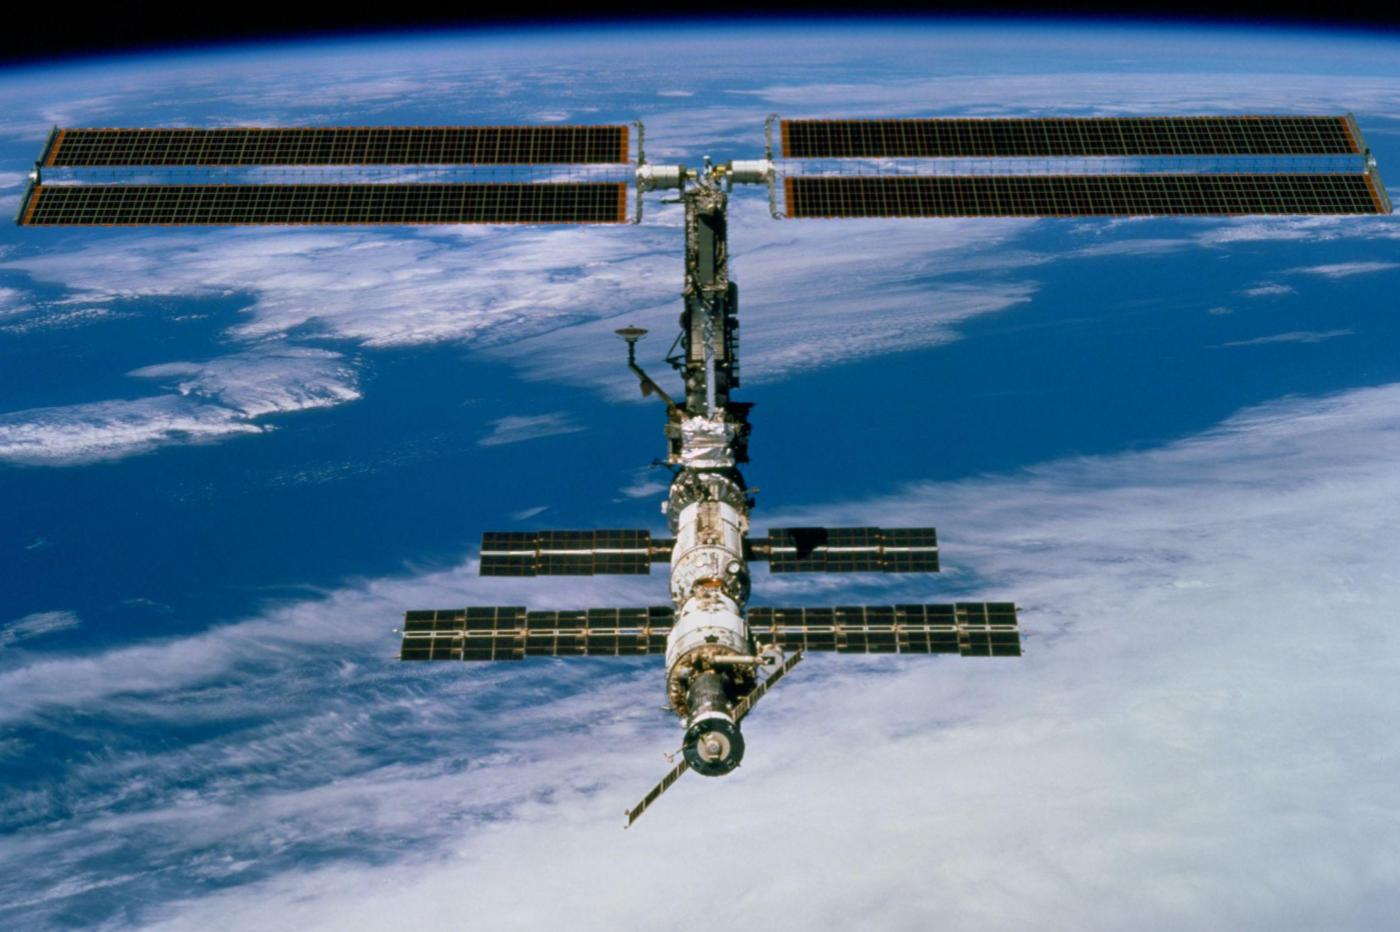 Space debris collides with one of the robotic arms of the International Space Station